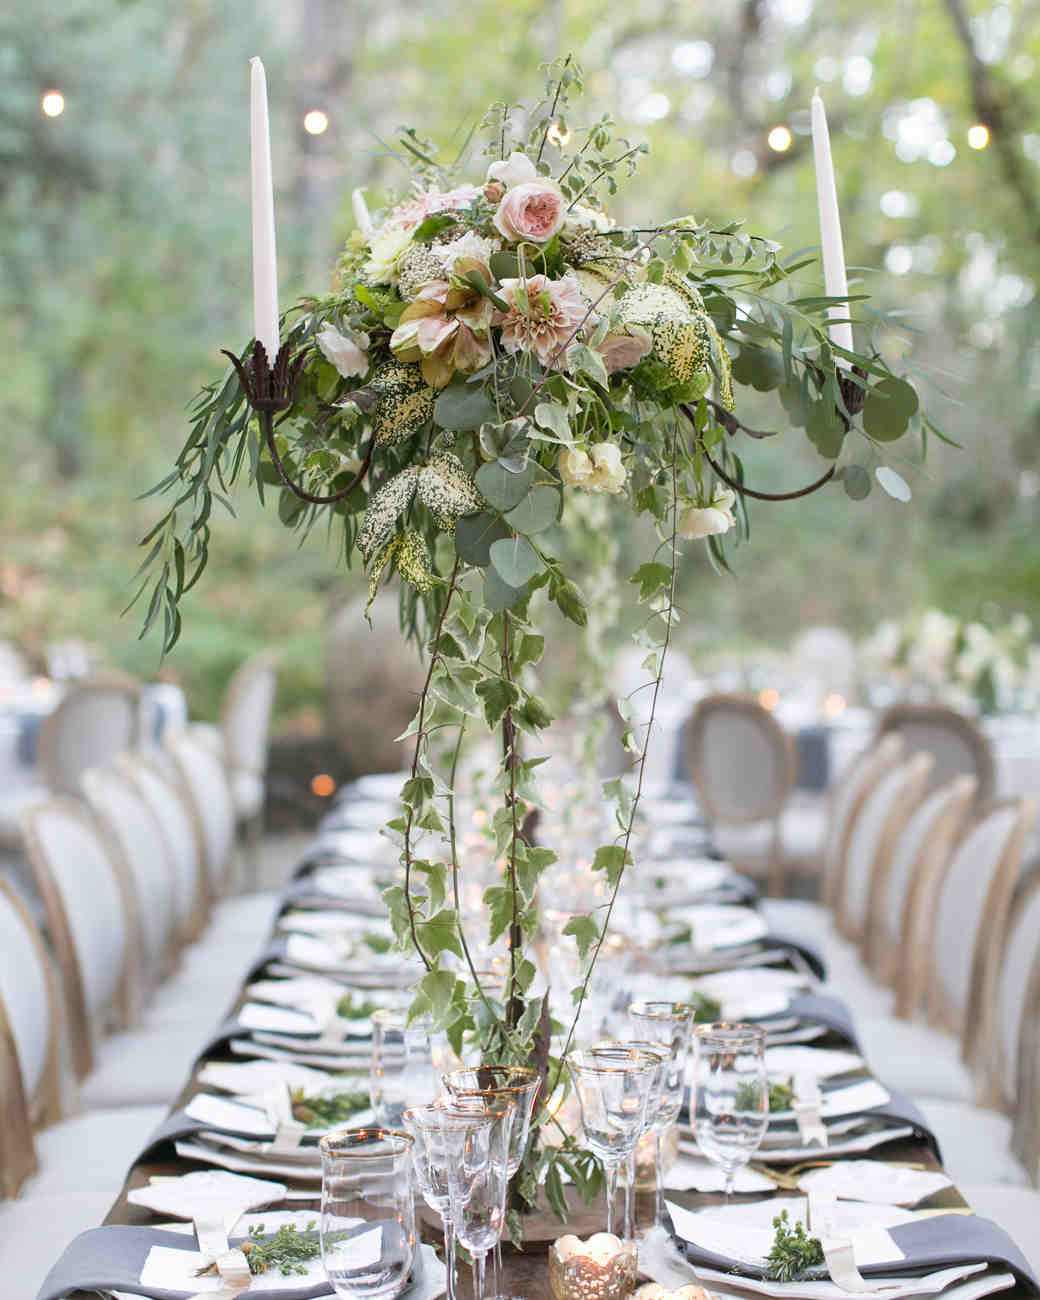 Wedding Head Table Flowers: 50 Wedding Centerpiece Ideas We Love